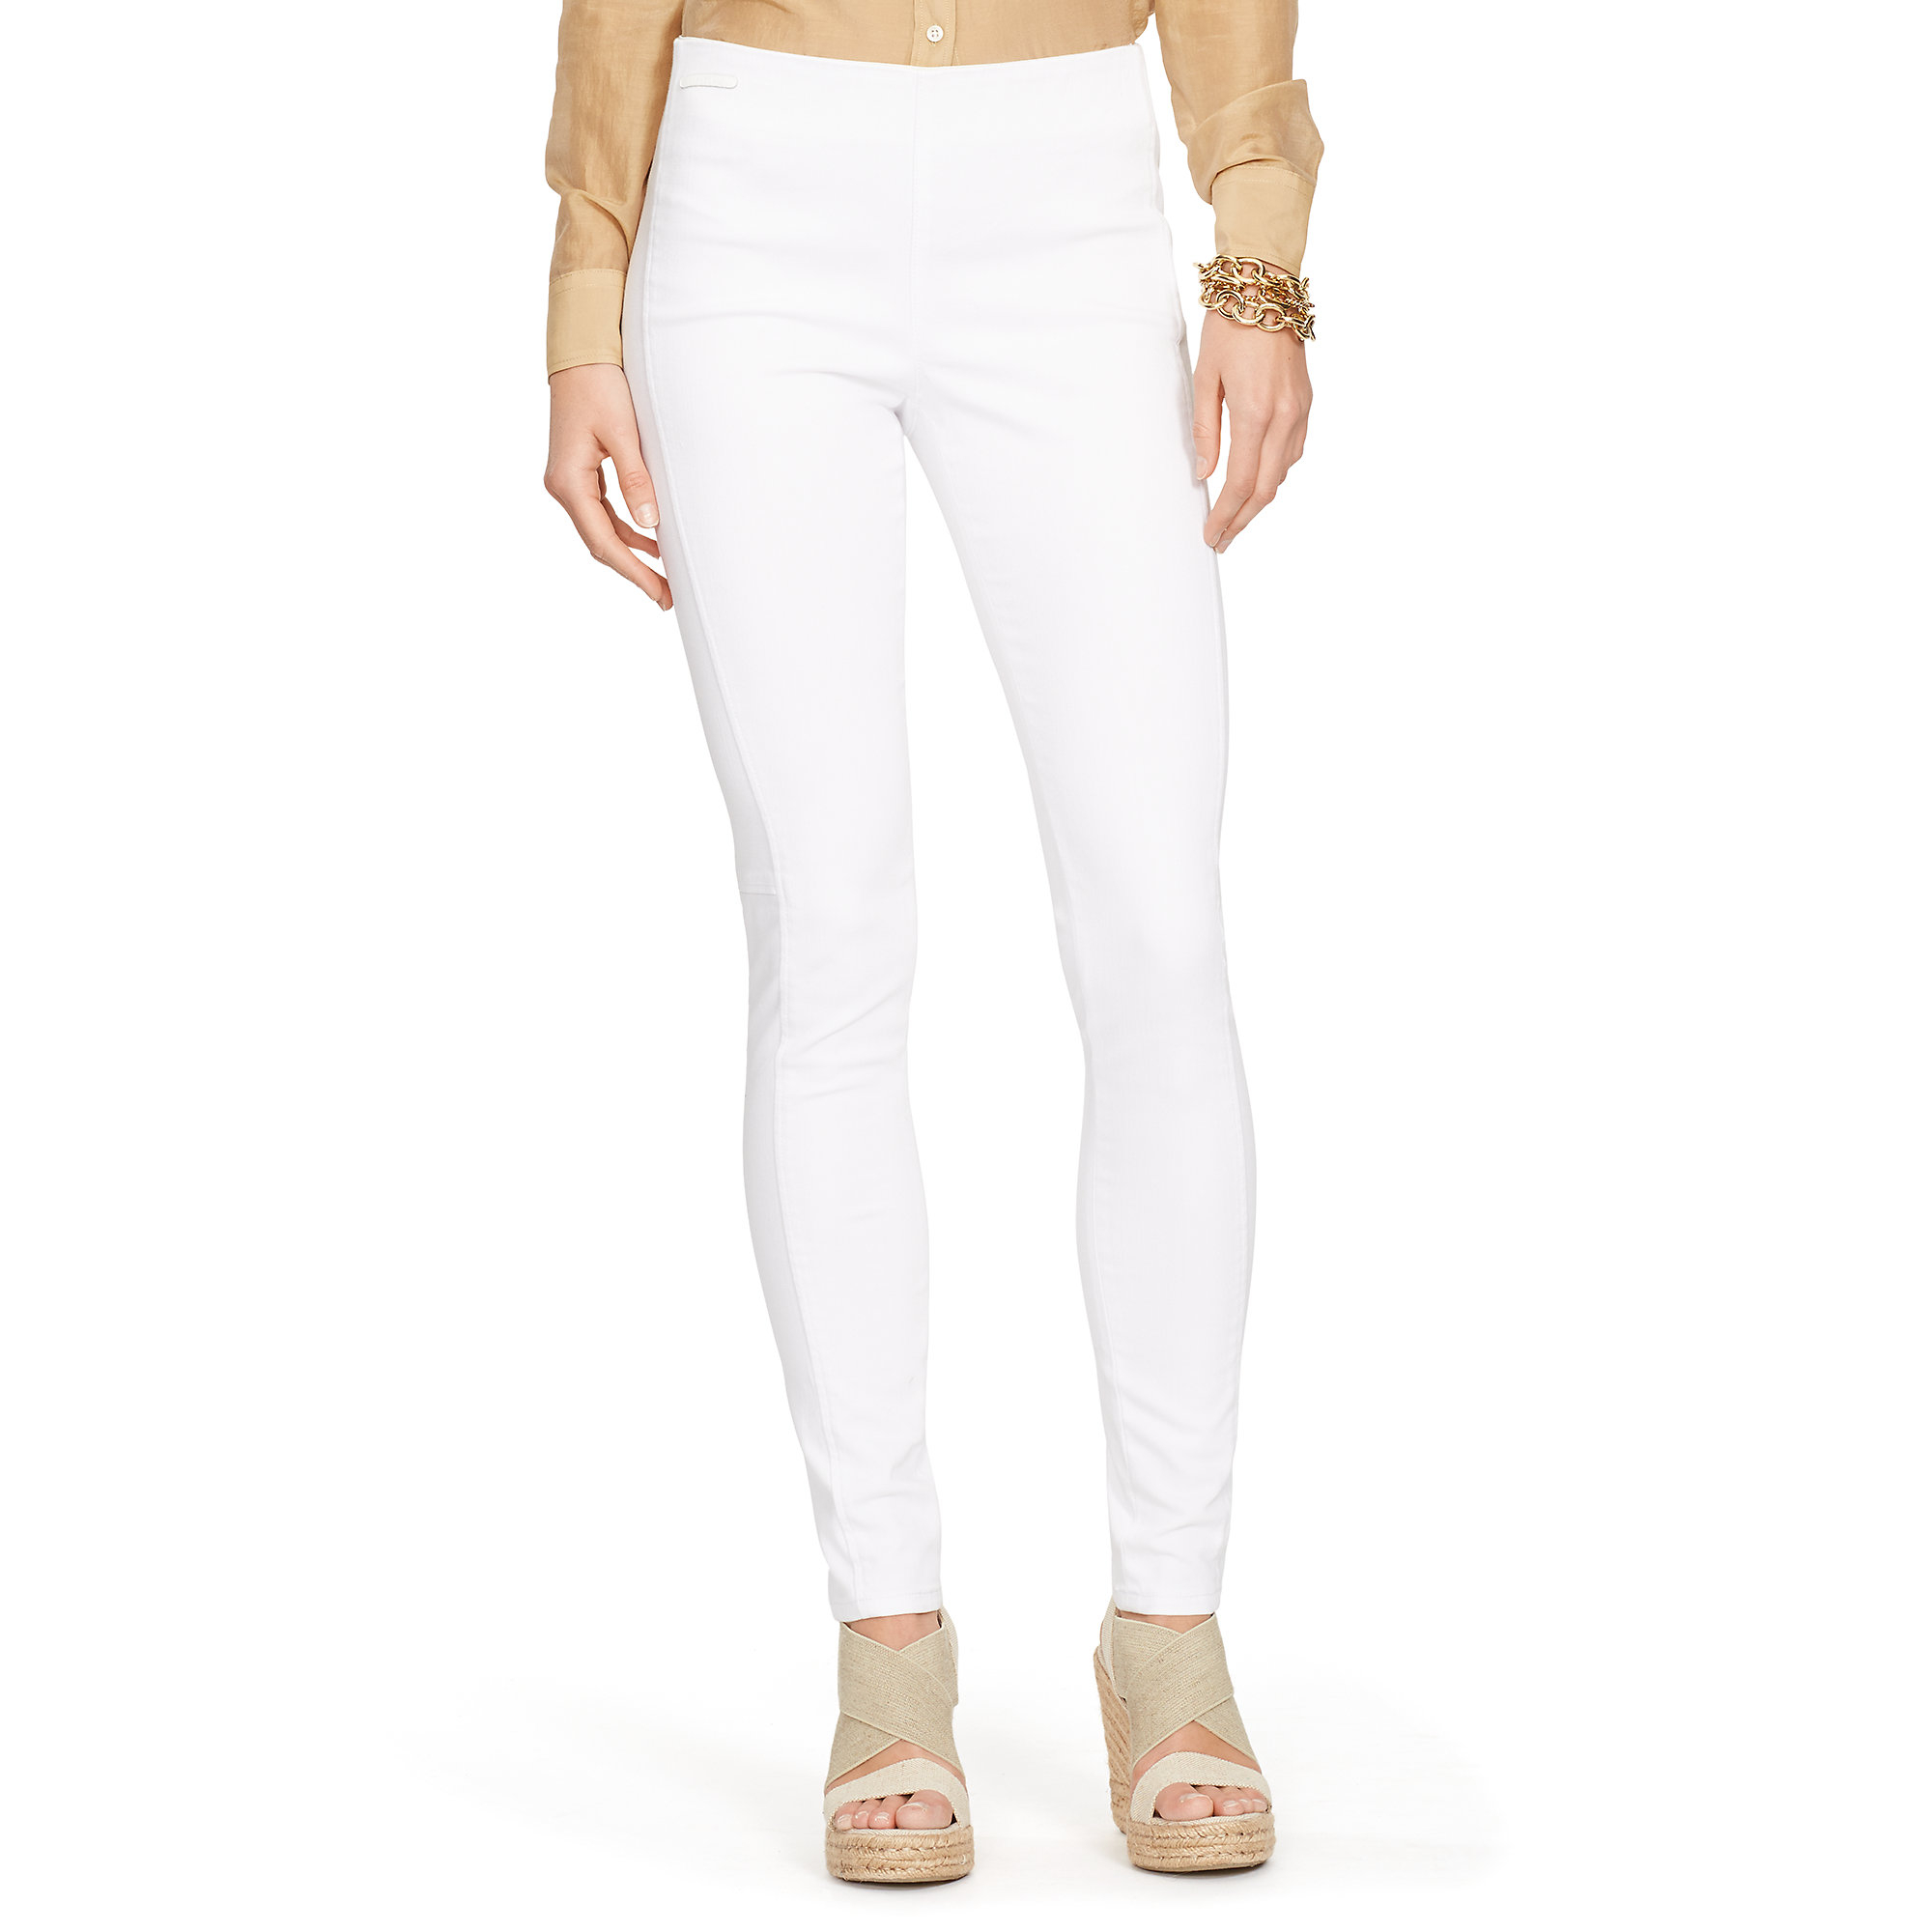 Ralph lauren Stretch Legging Jean in White | Lyst